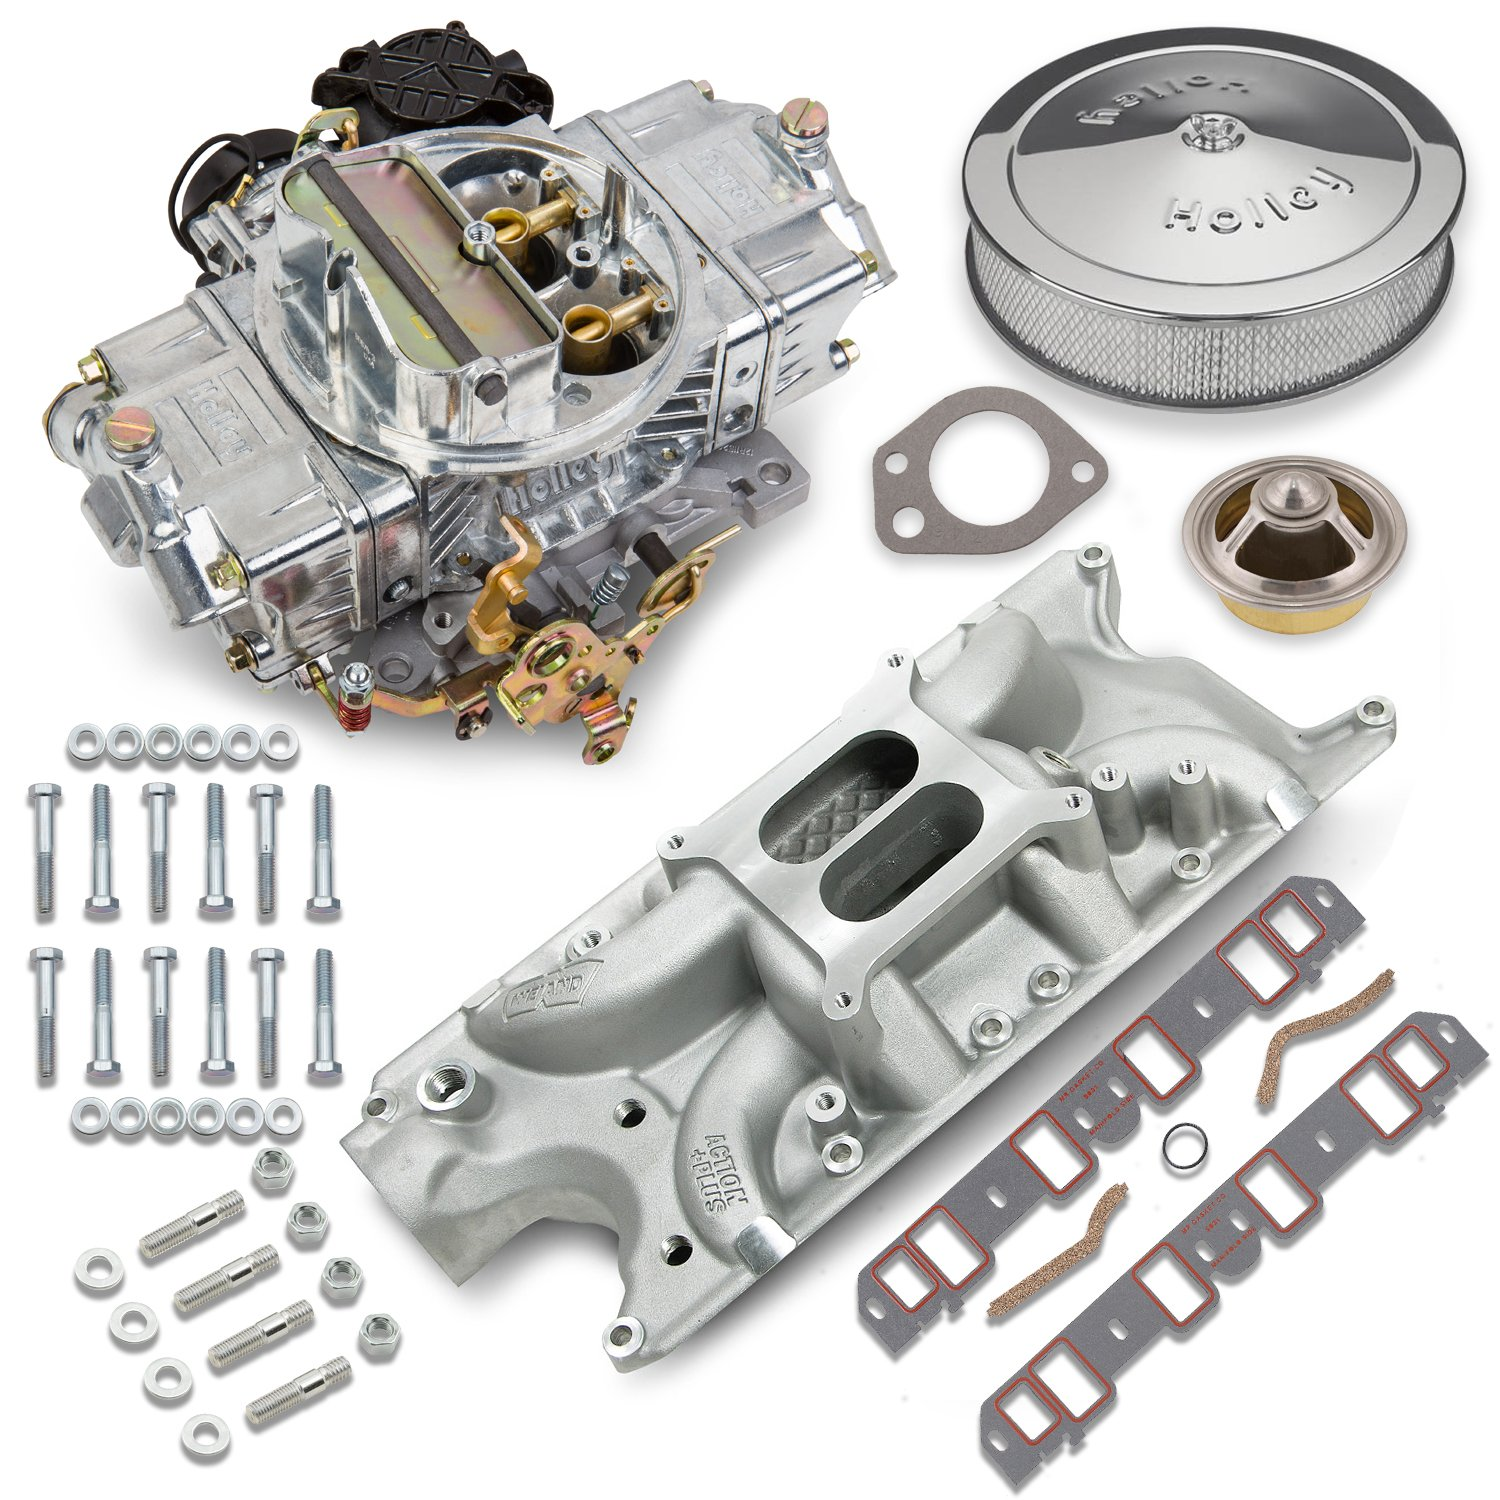 750 CFM 0-80508S Carburetor and Small Block Ford Intake Manifold Combo